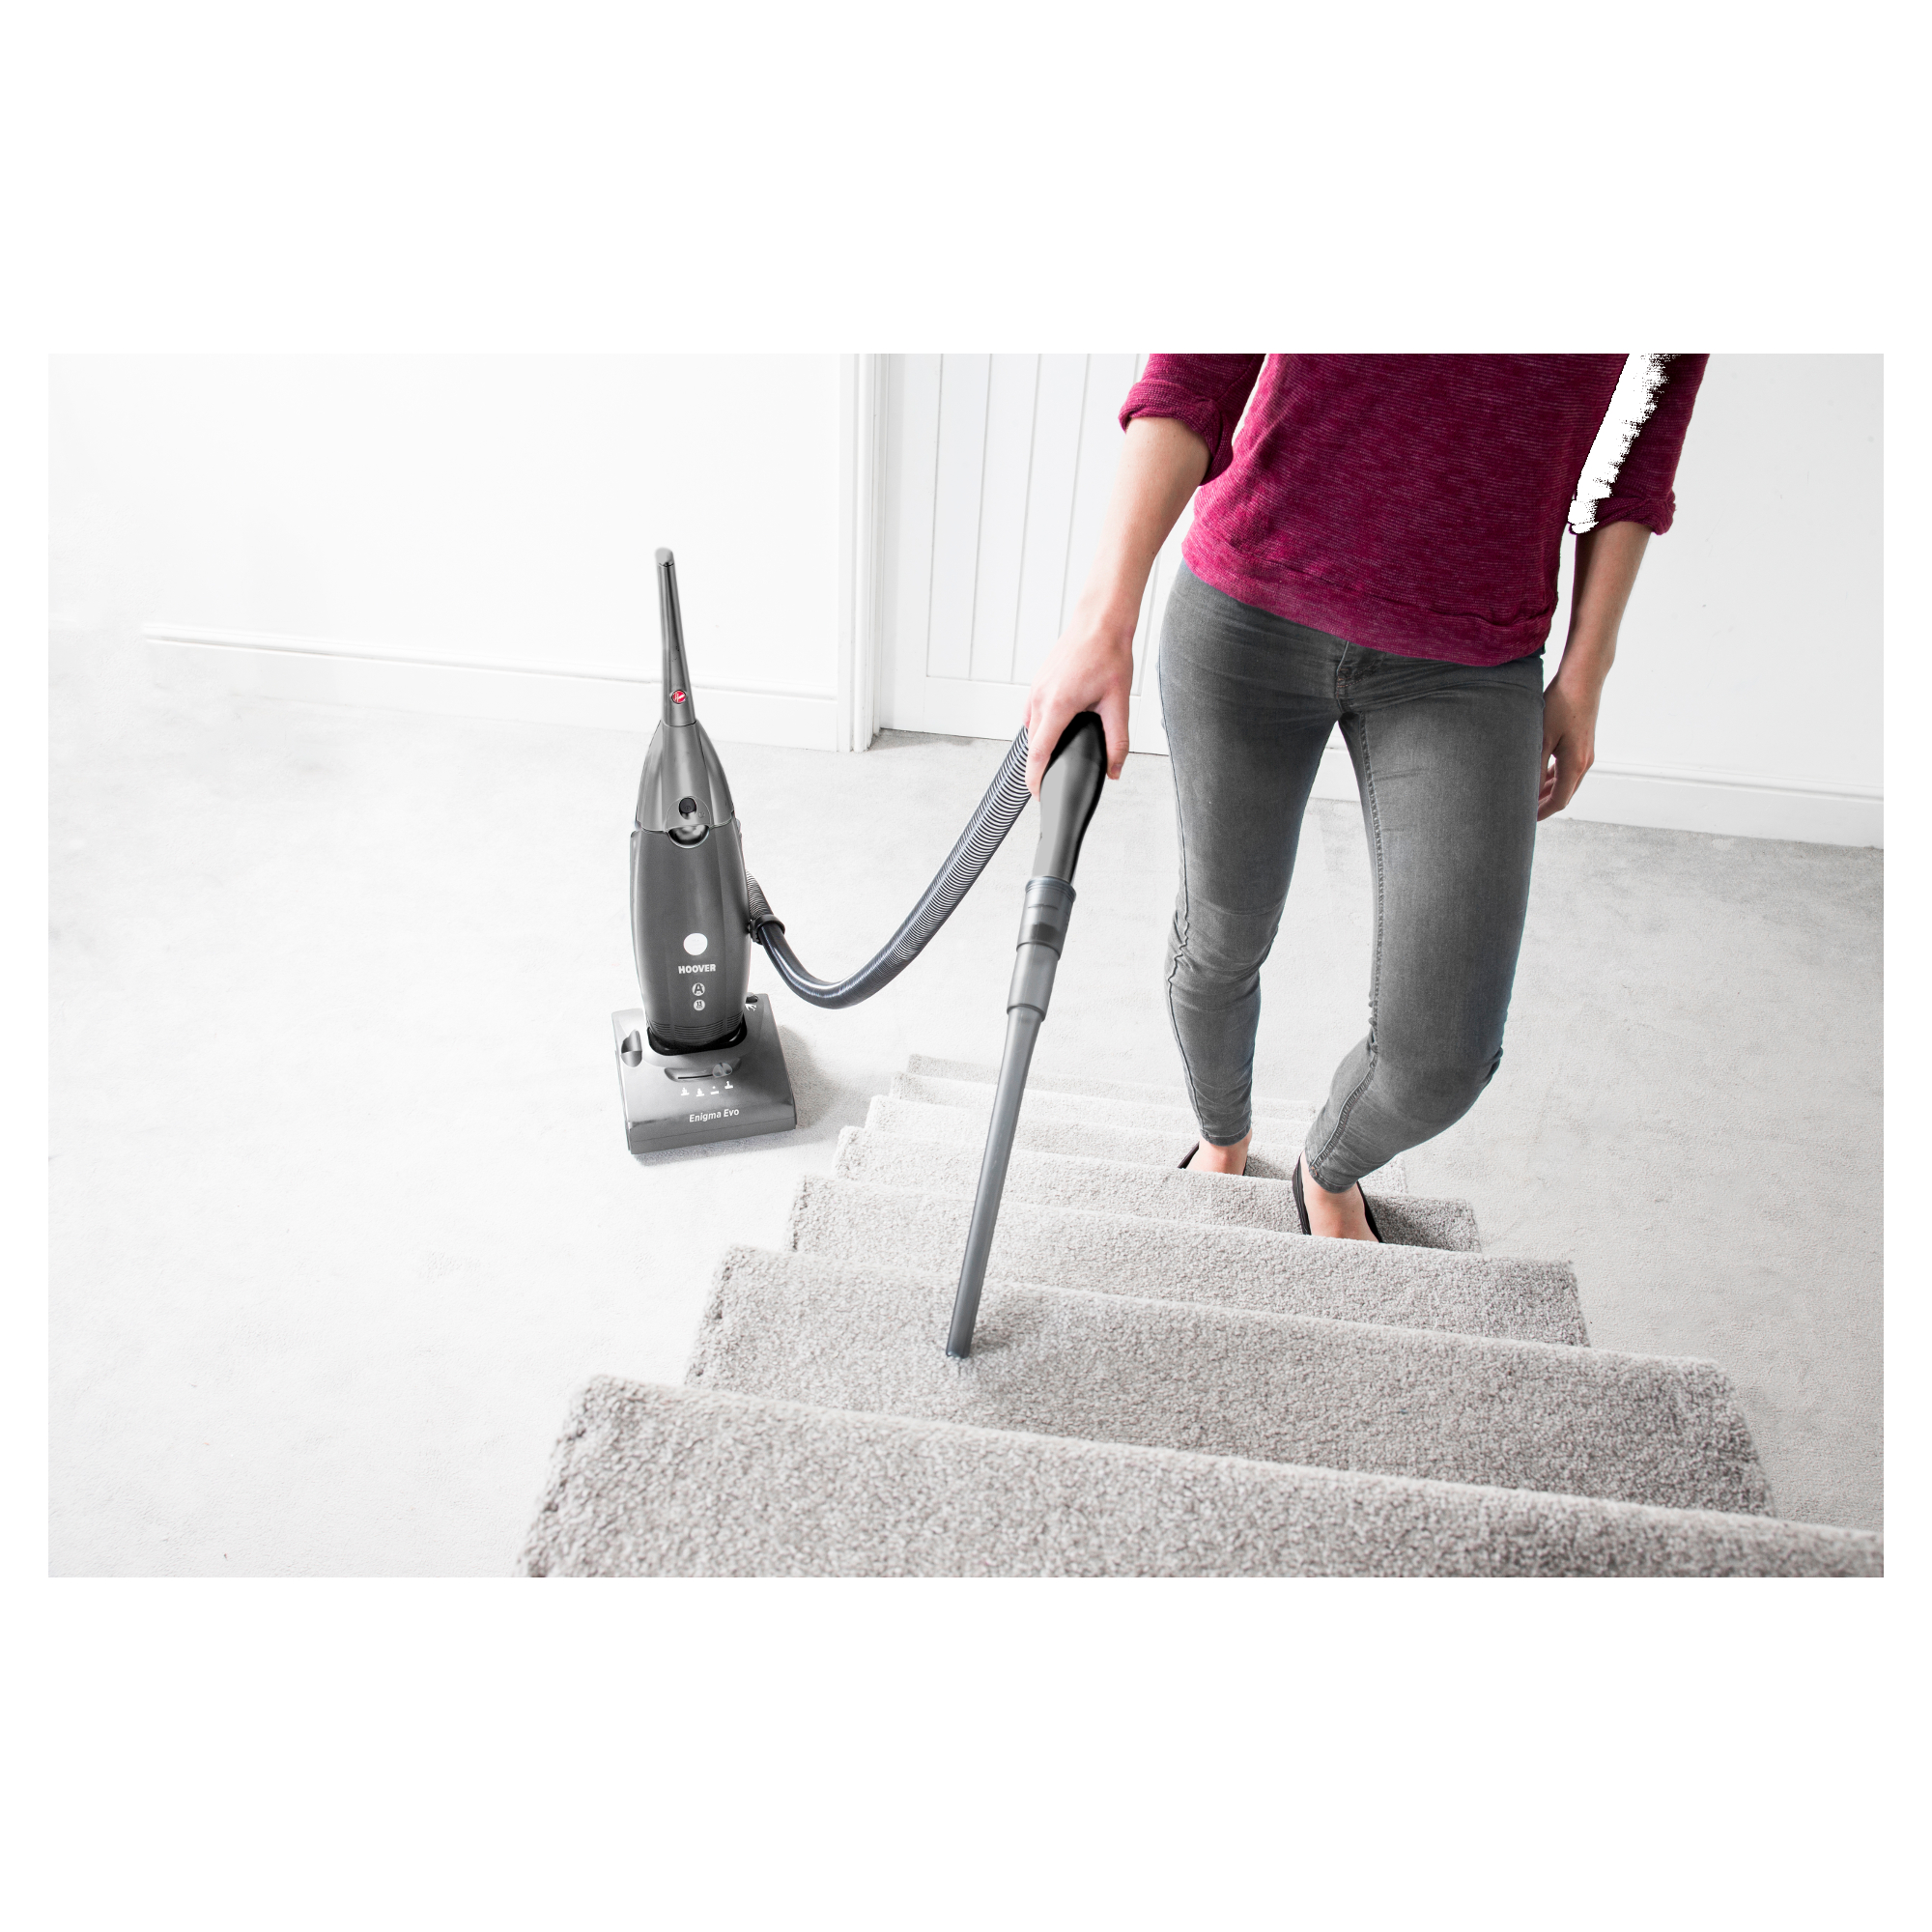 Details about Hoover Enigma Evo Bagged Upright Vacuum Cleaner with 3L Capacity Grey